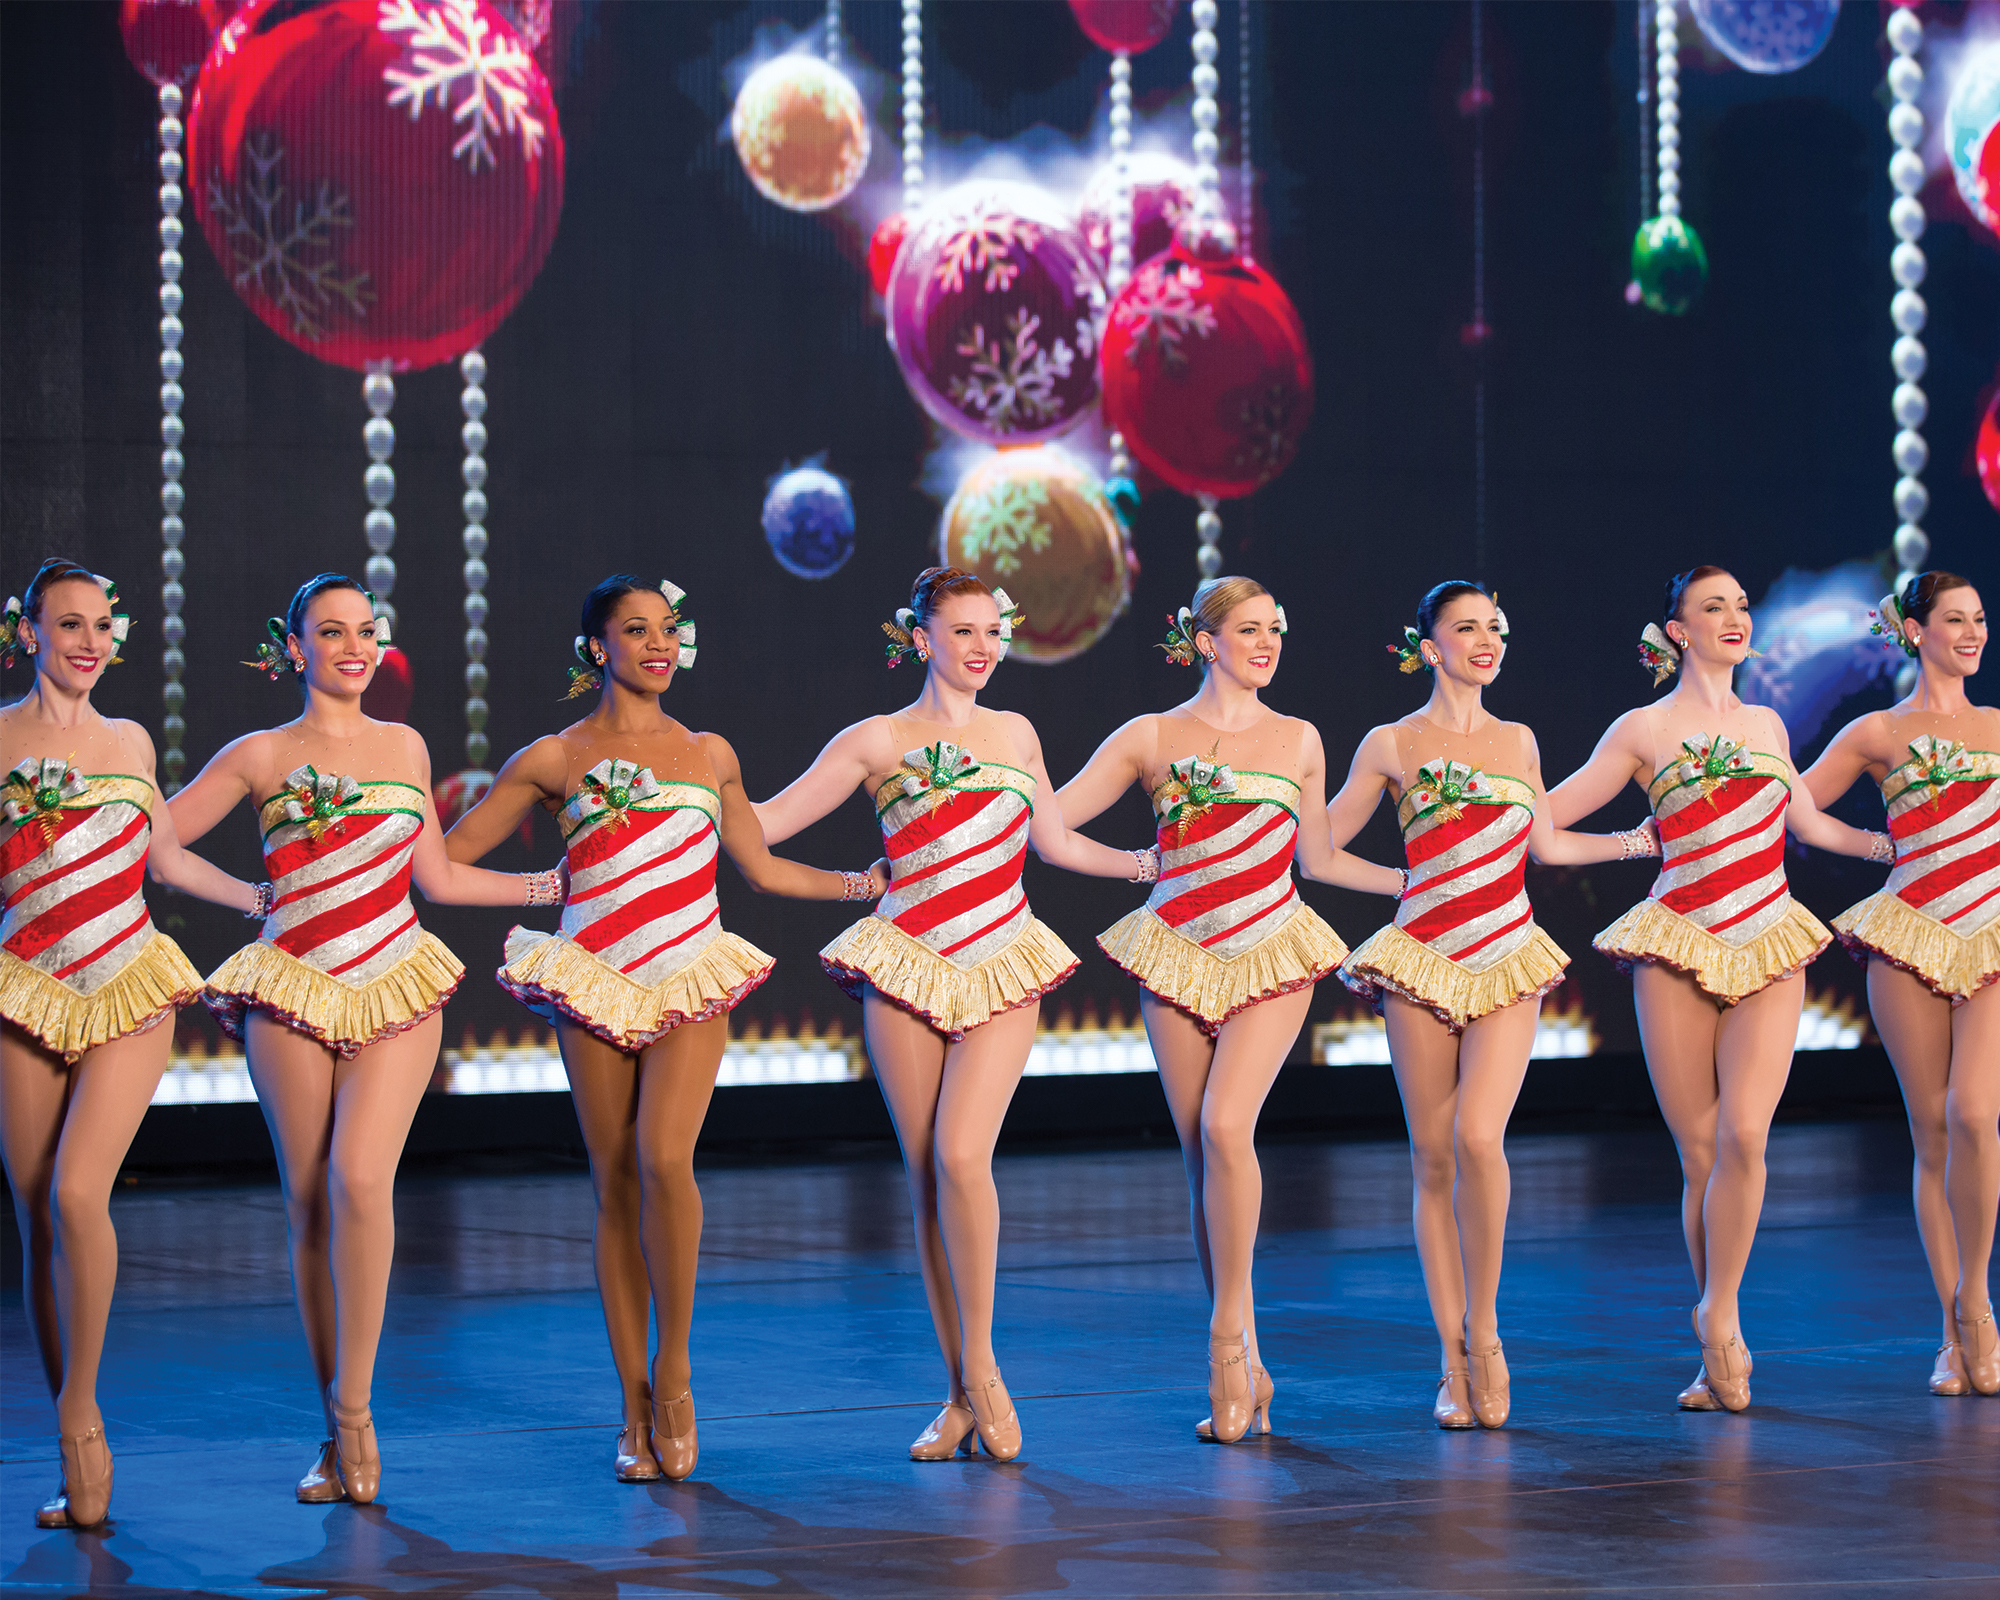 ChristmasSpectacular19_productionphotos_2000x1600_20160323_XW5A2832-e.jpg